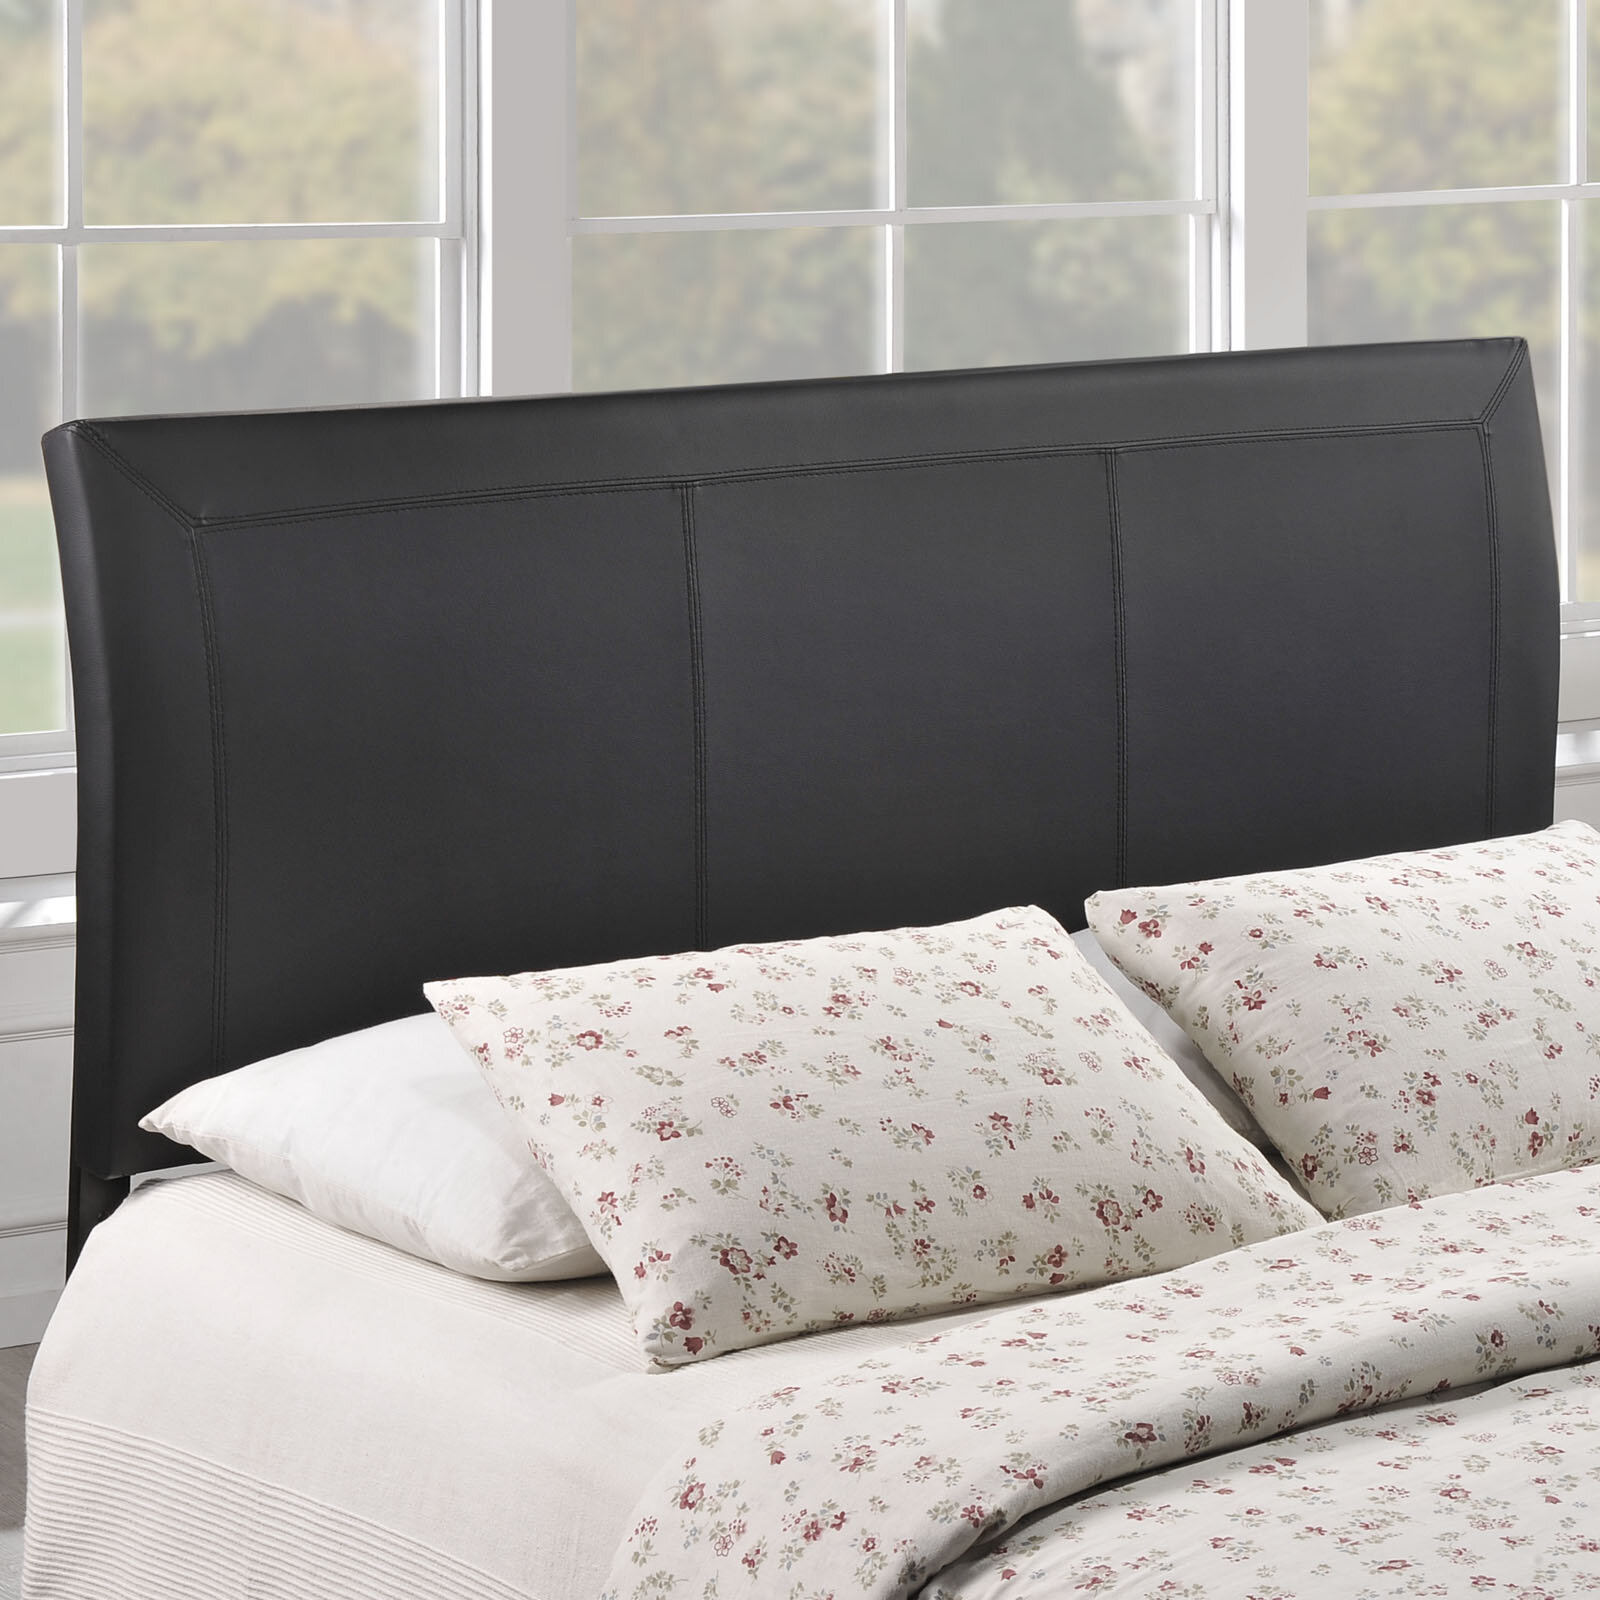 Apolonio Queen Upholstered Wingback Headboard